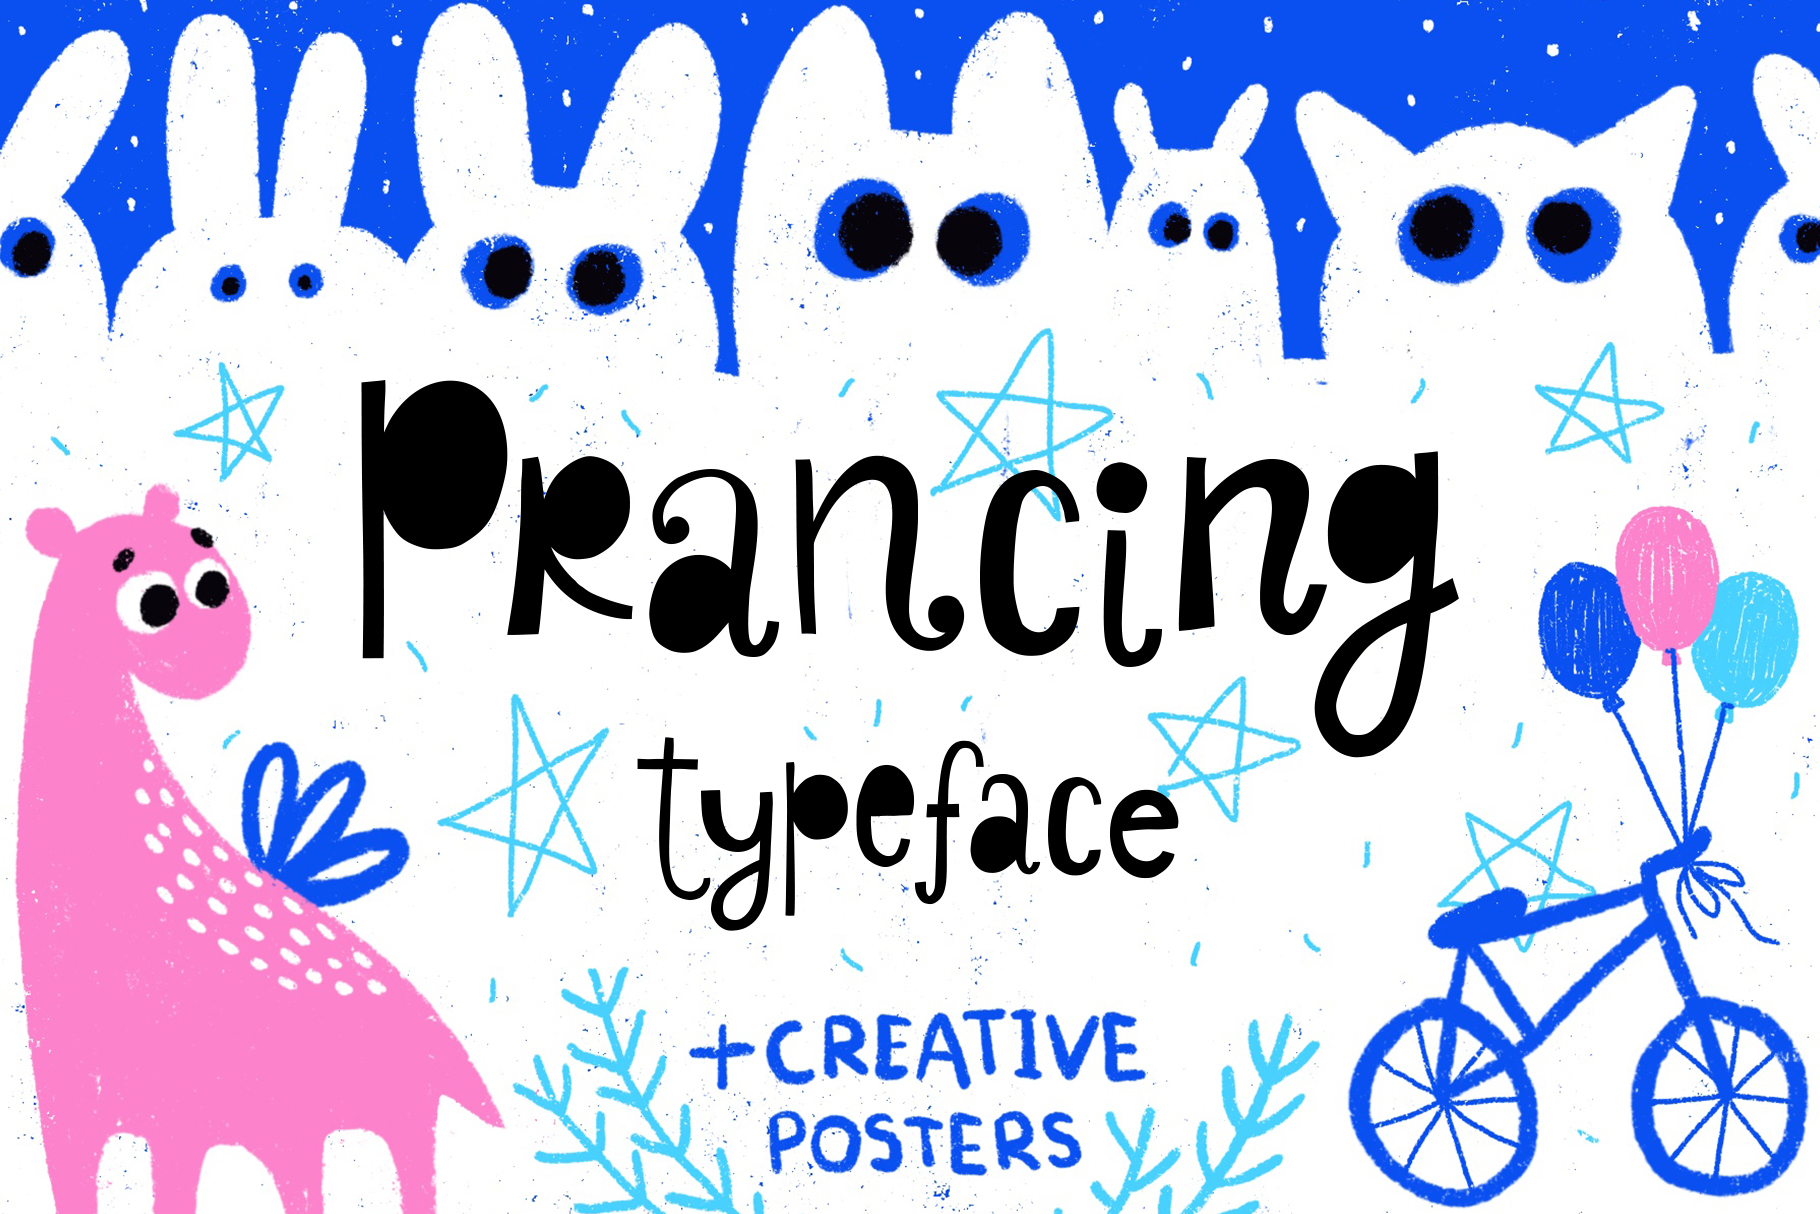 Prancing typeface with posters example image 1